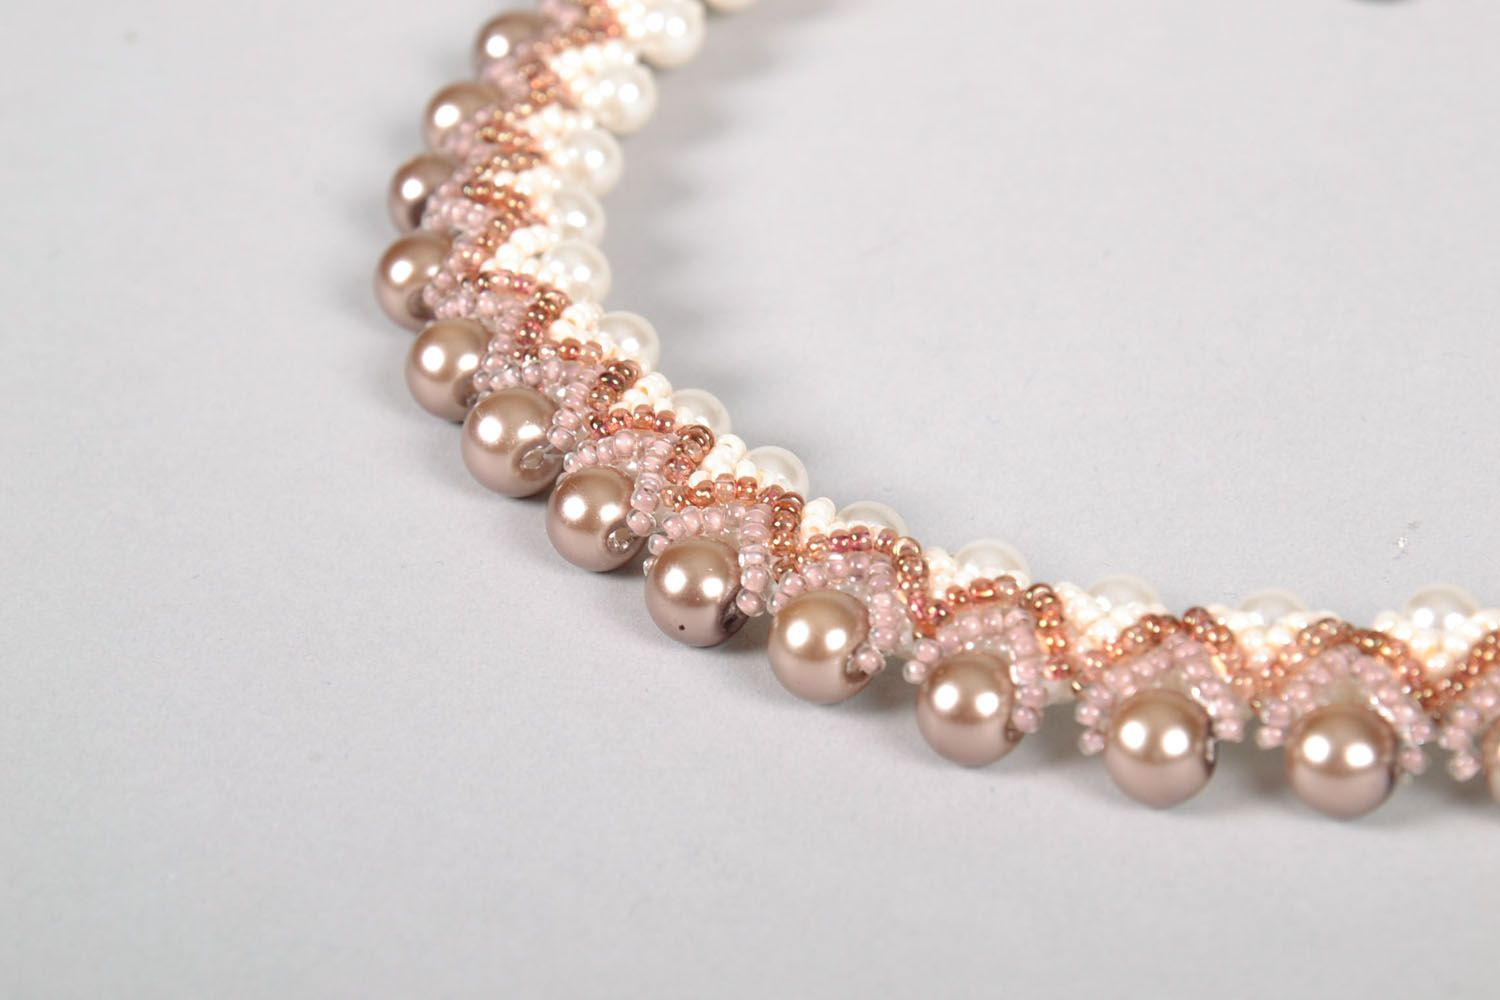 Necklace made of artificial pearl photo 4